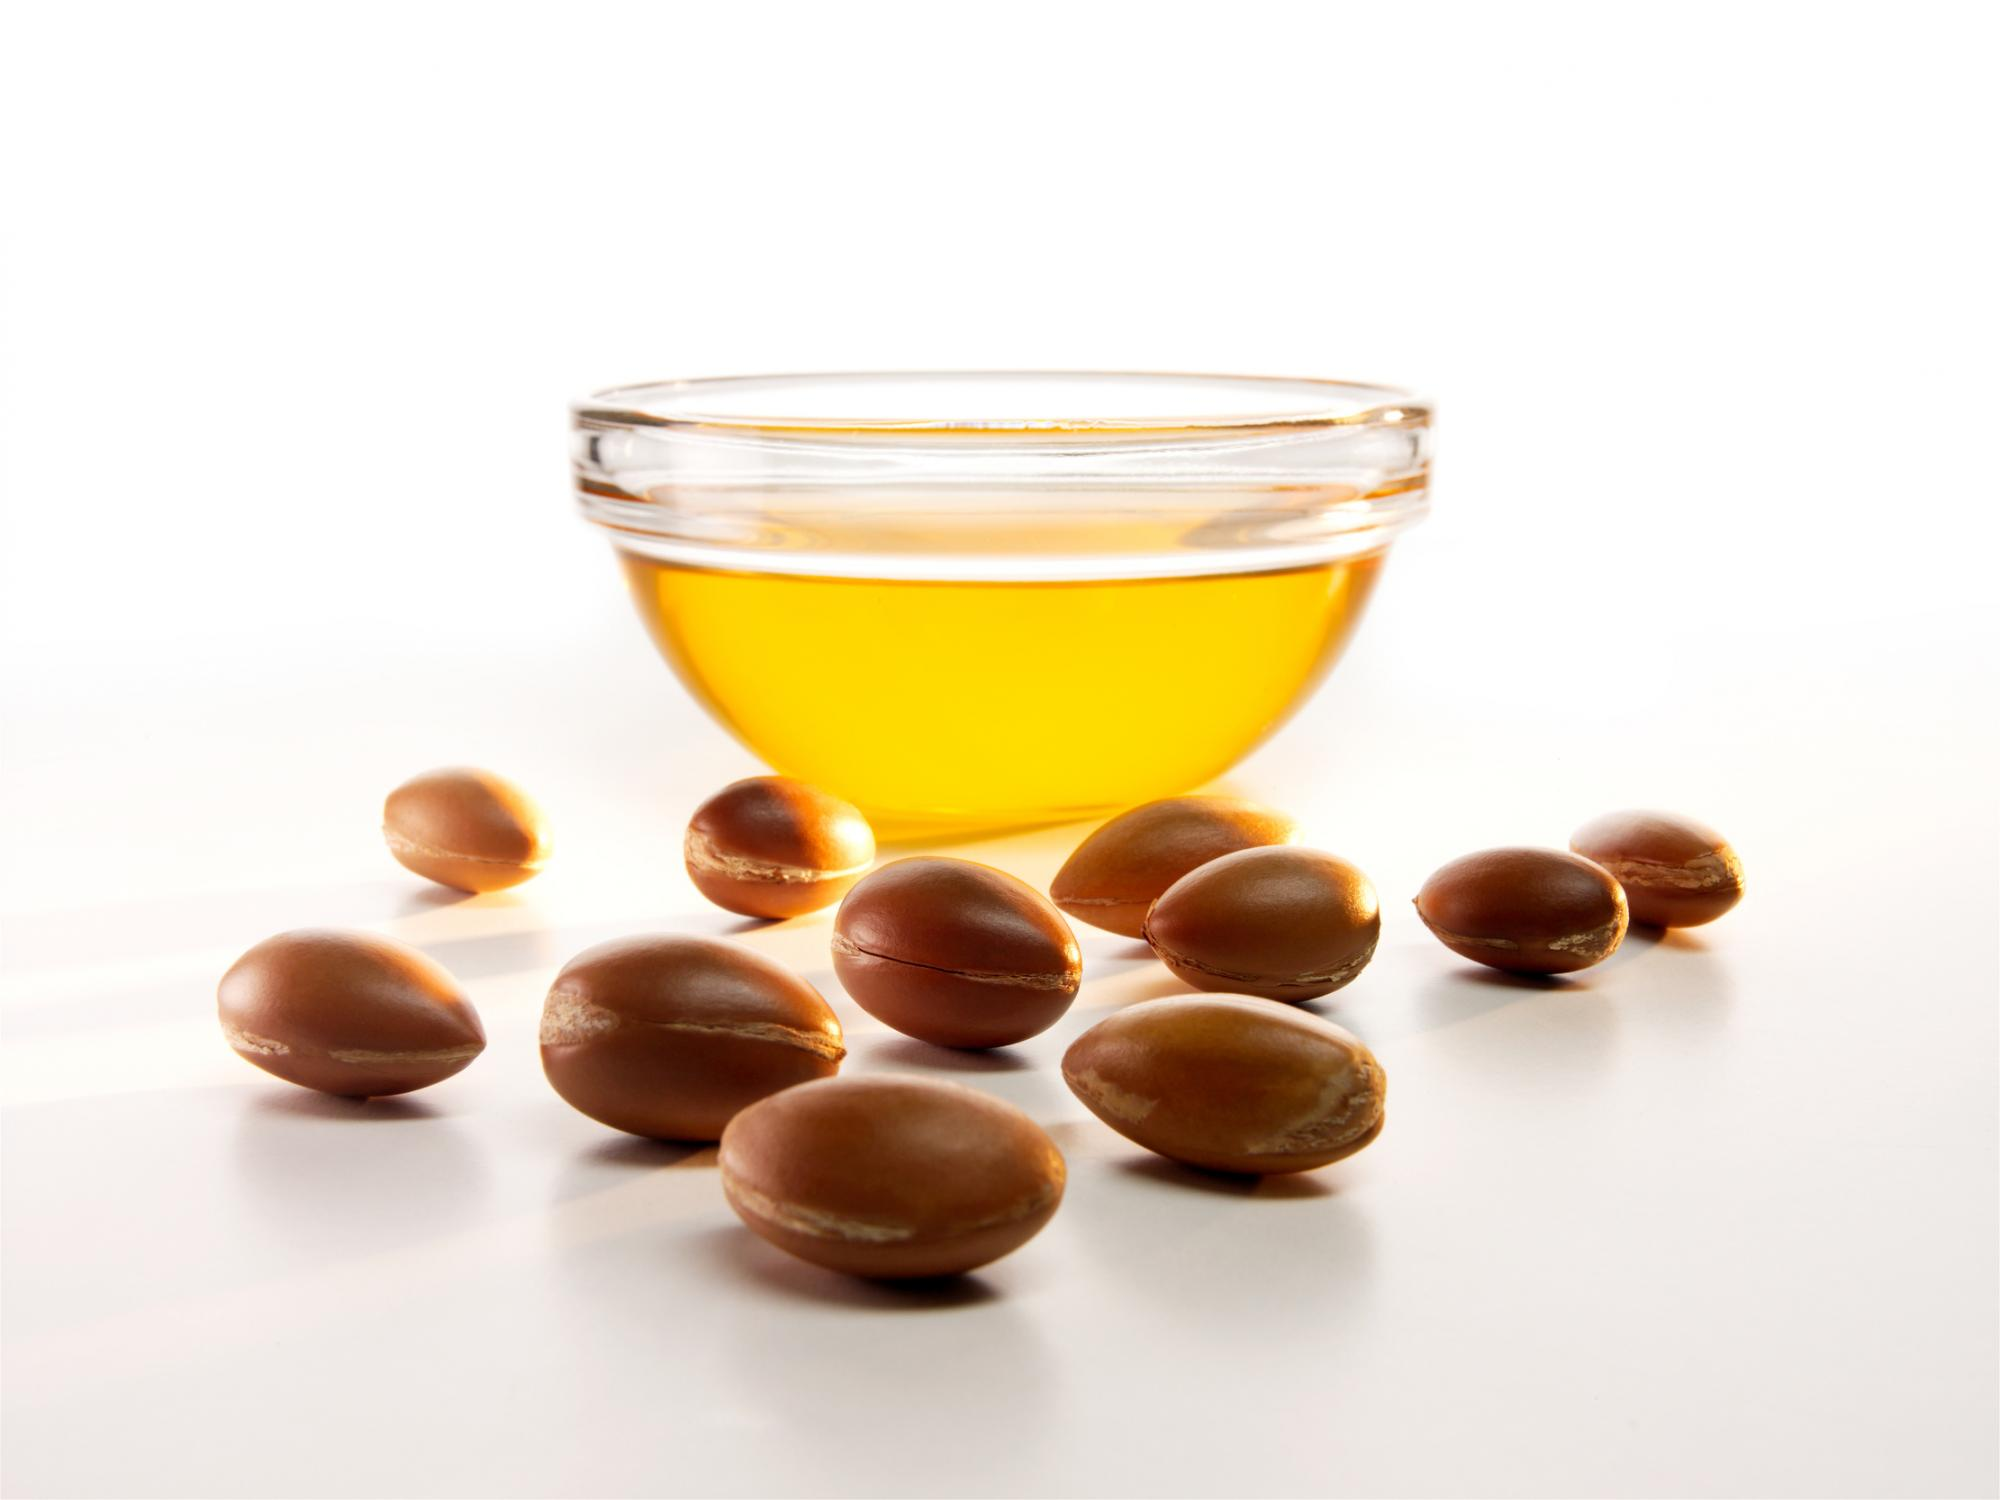 L'huile d'argan considérablement bénéfique pour nourrir et hydrater la peau - Argan oil considerably beneficial for nourishing and hydrating the skin